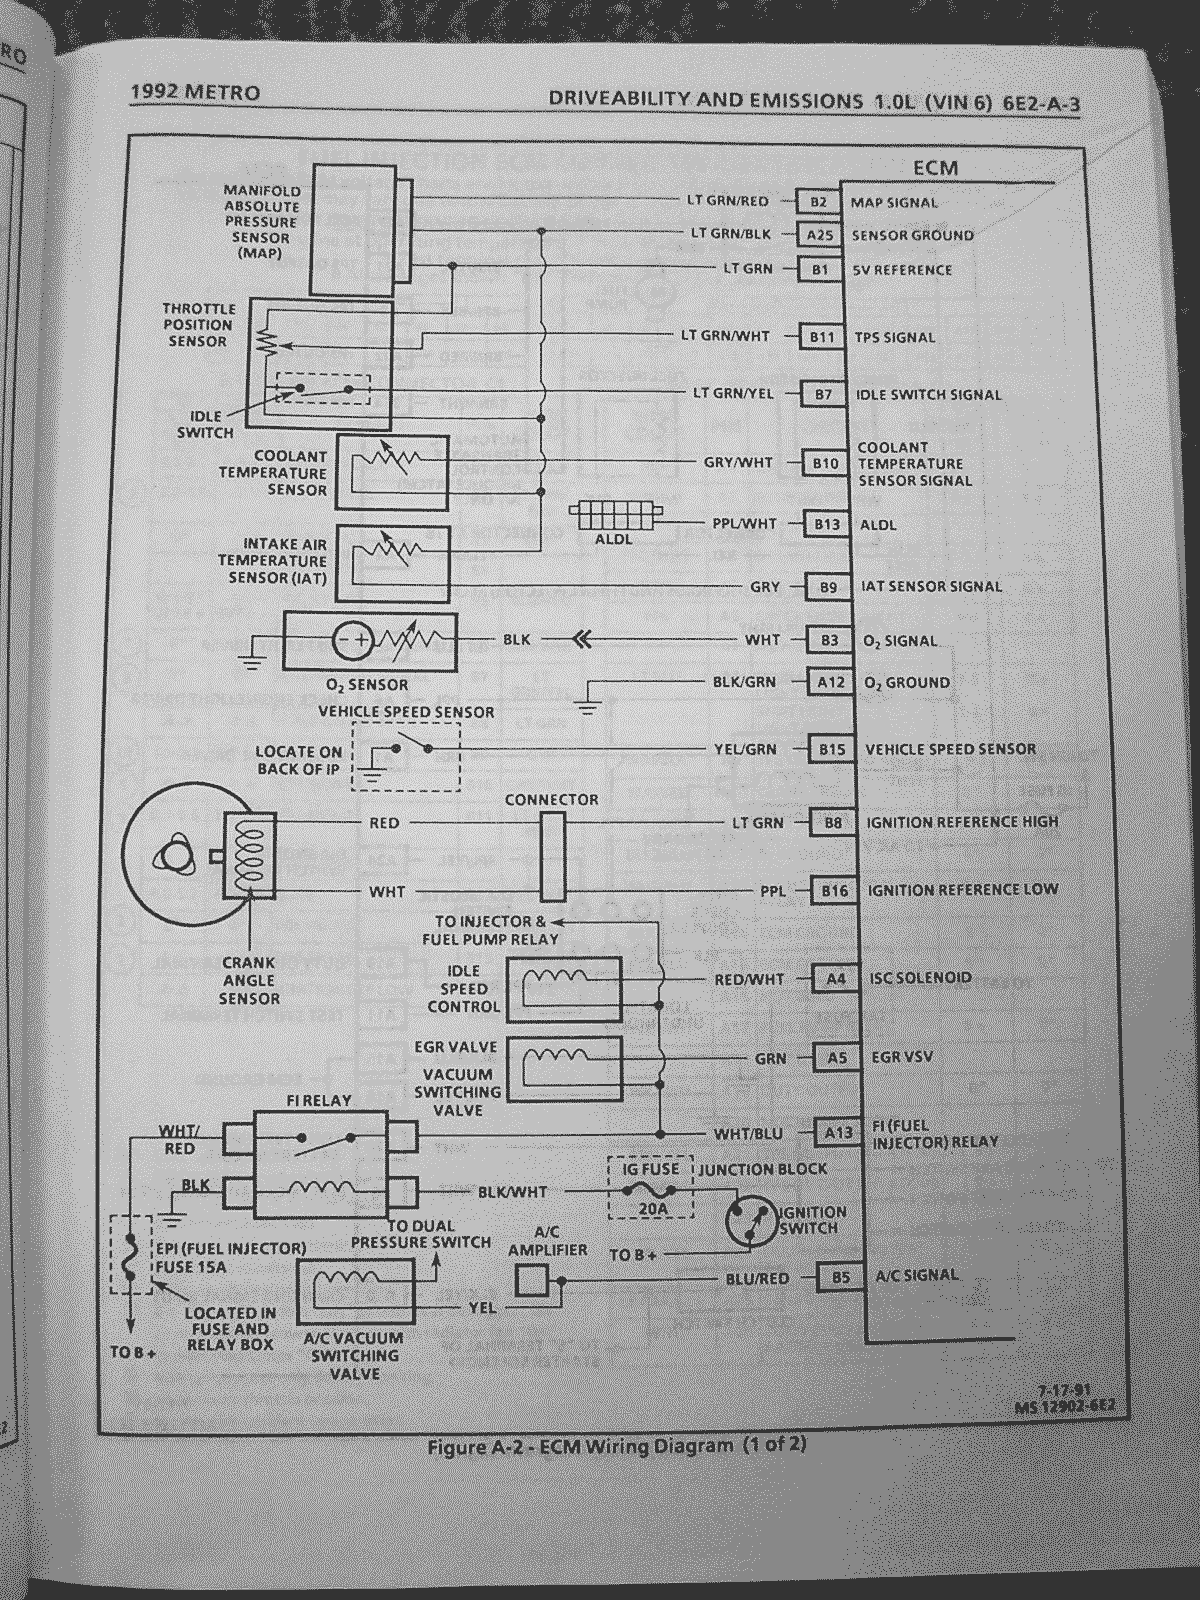 Chevy Prizm Wiring Diagram 1997 Geo Metro on geo metro automatic transmission diagram